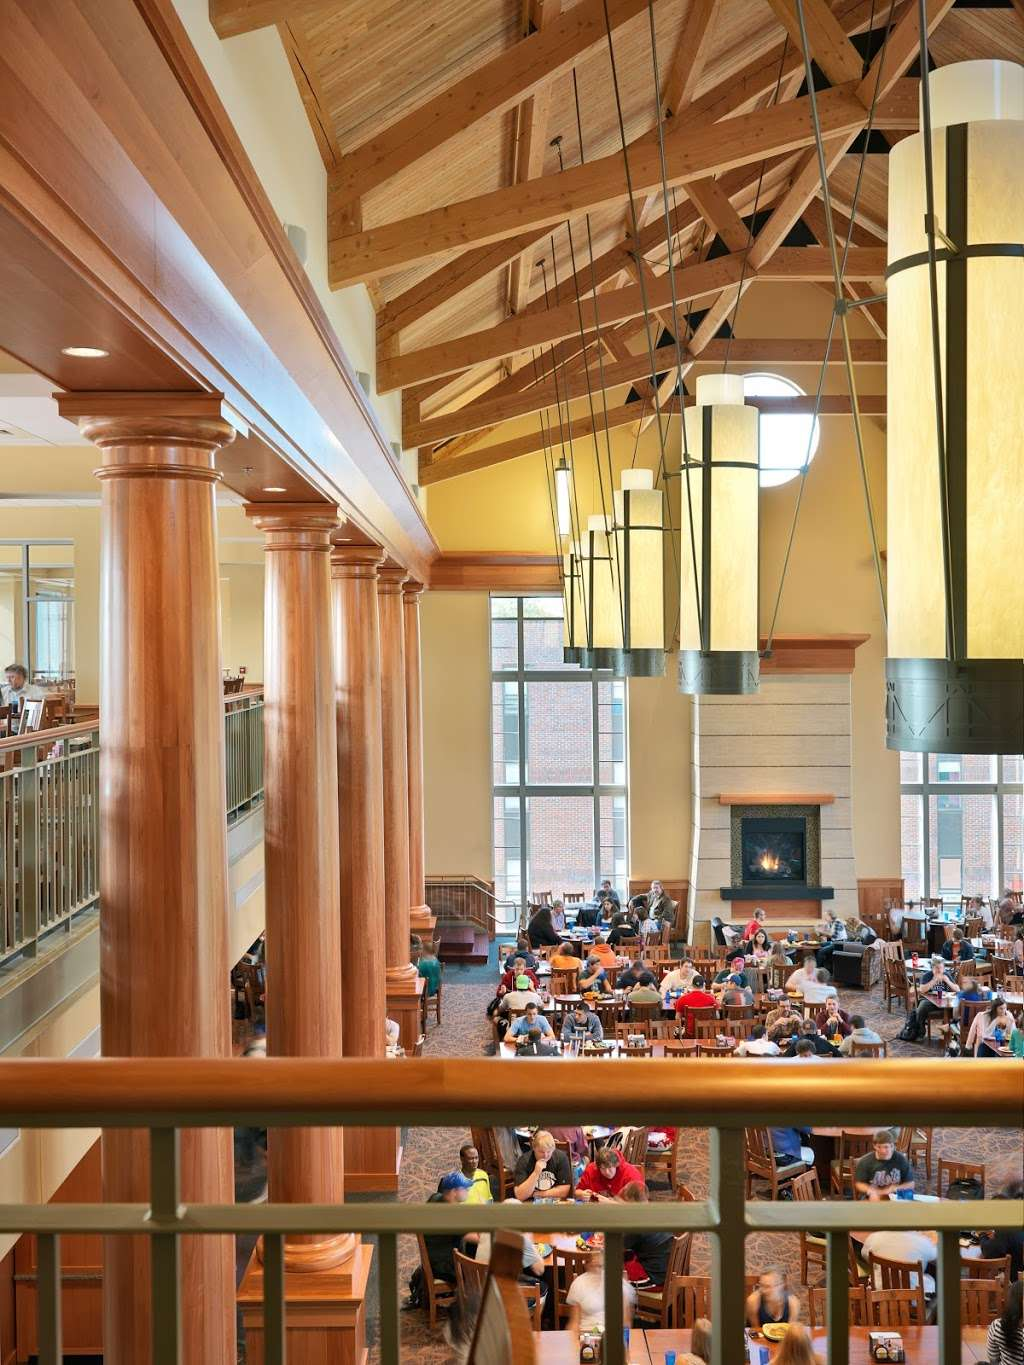 The Wood Dining Commons (Muhlenberg College Dining) - restaurant  | Photo 9 of 10 | Address: 2400 W Chew St, Allentown, PA 18104, USA | Phone: (484) 664-3488